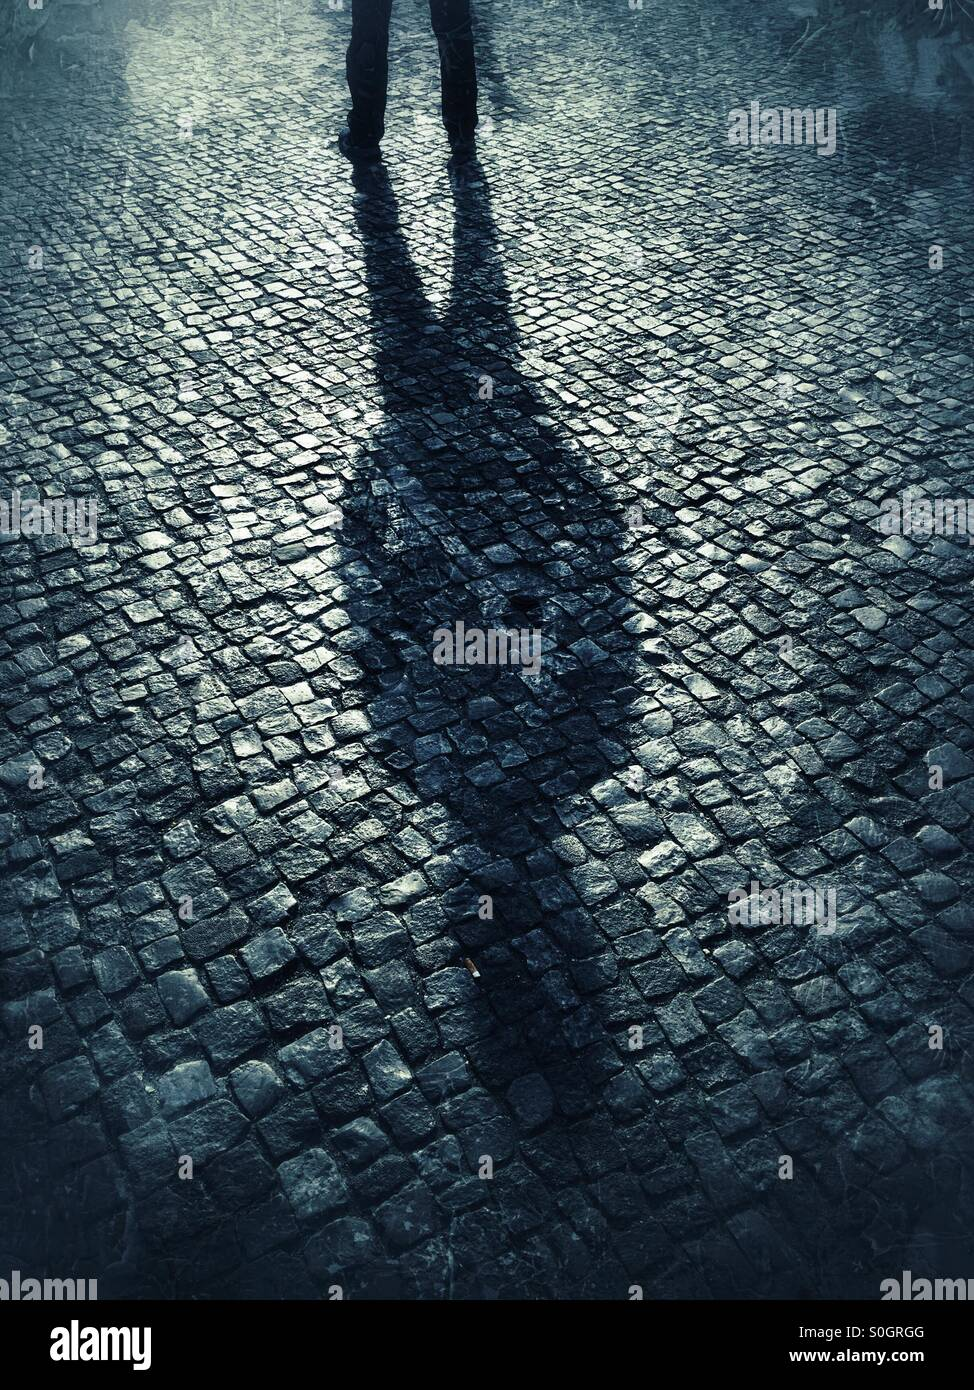 Sinister male shadow on cobbled road - Stock Image